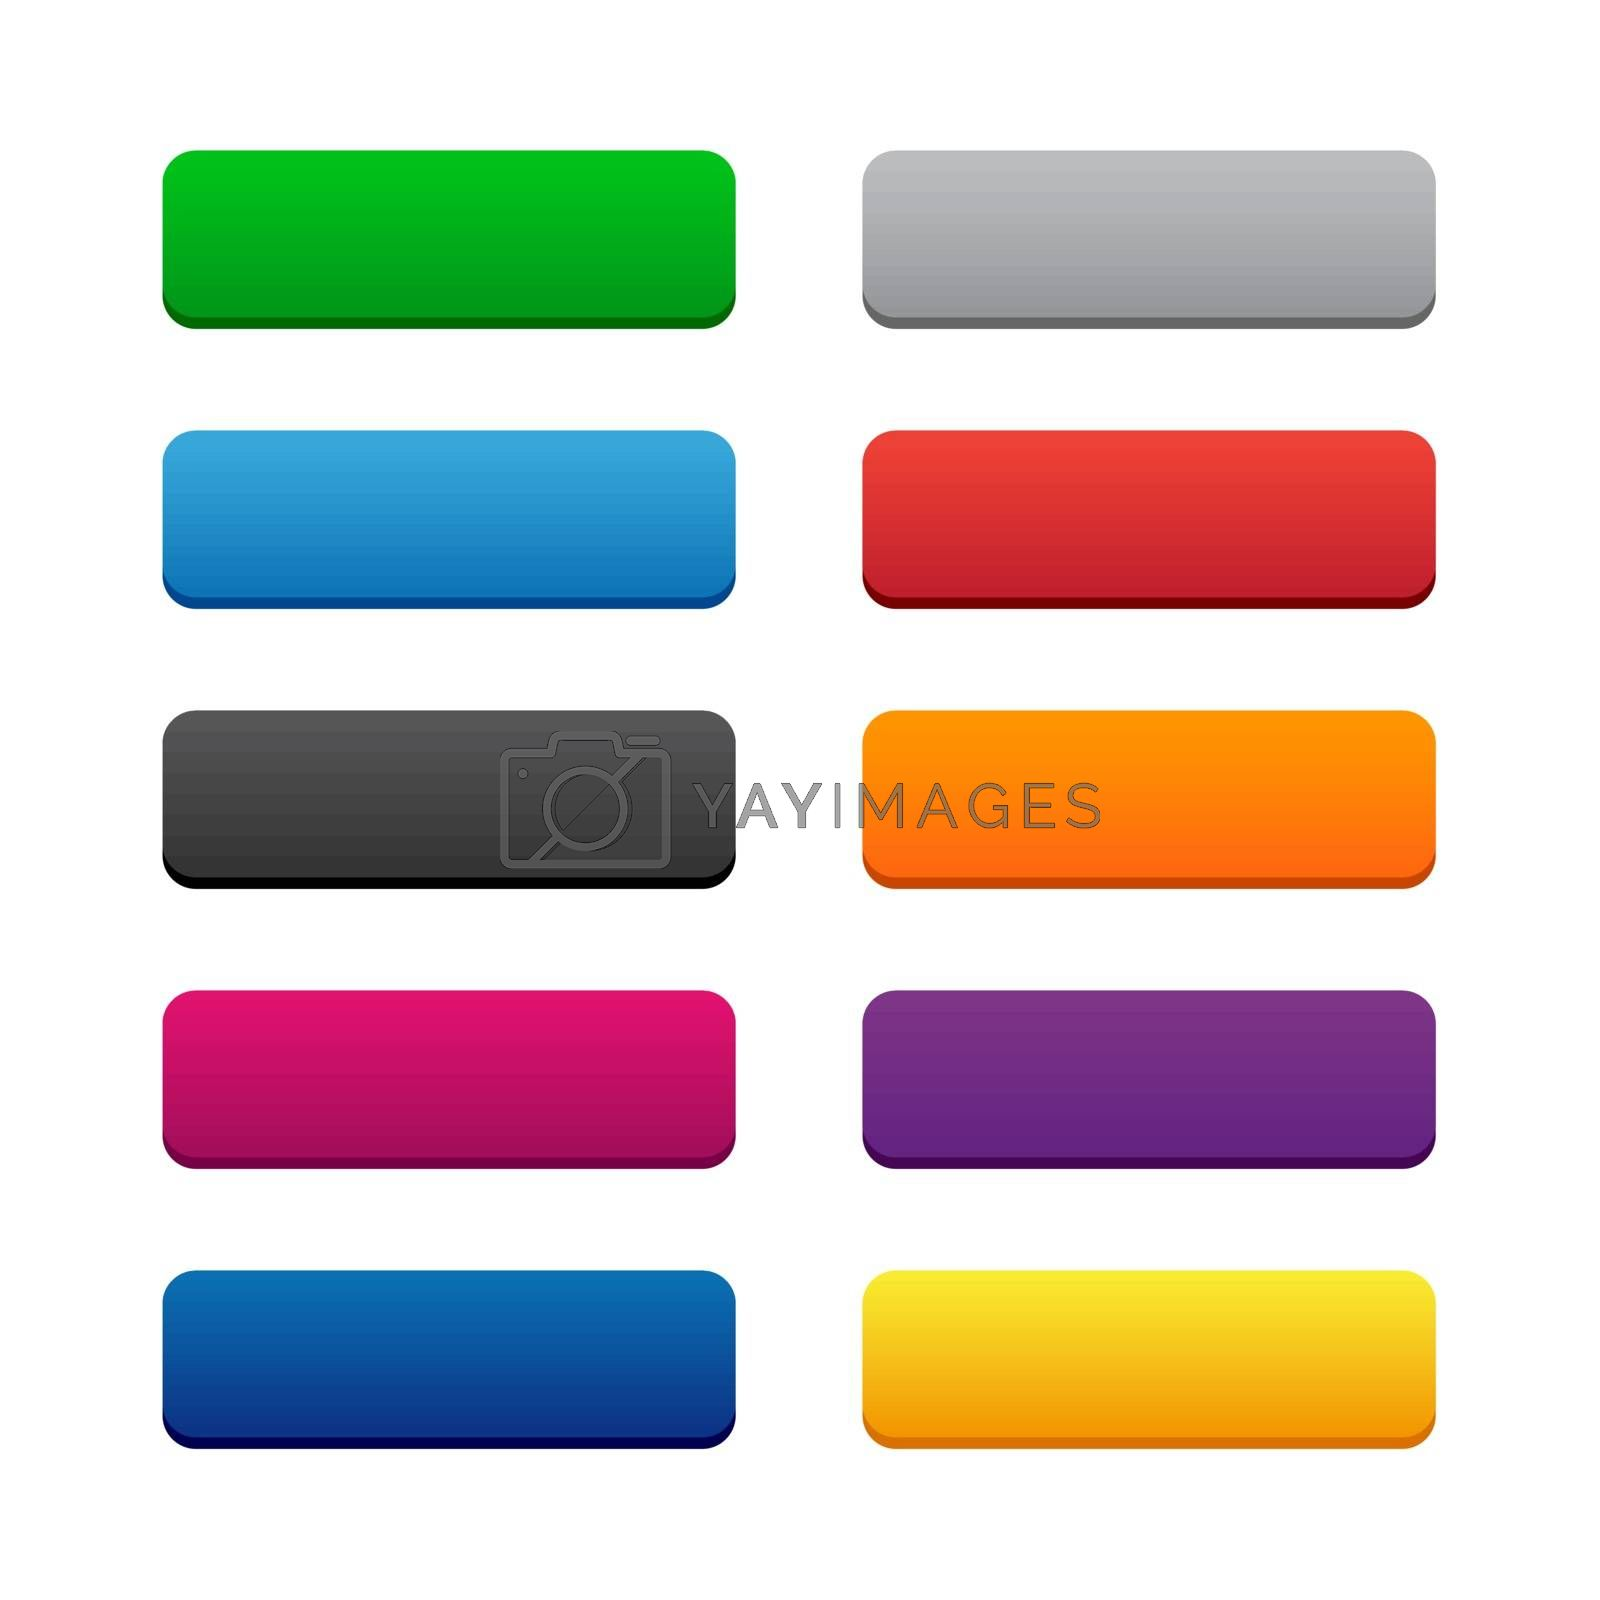 Royalty free image of Blank web buttons by simo988